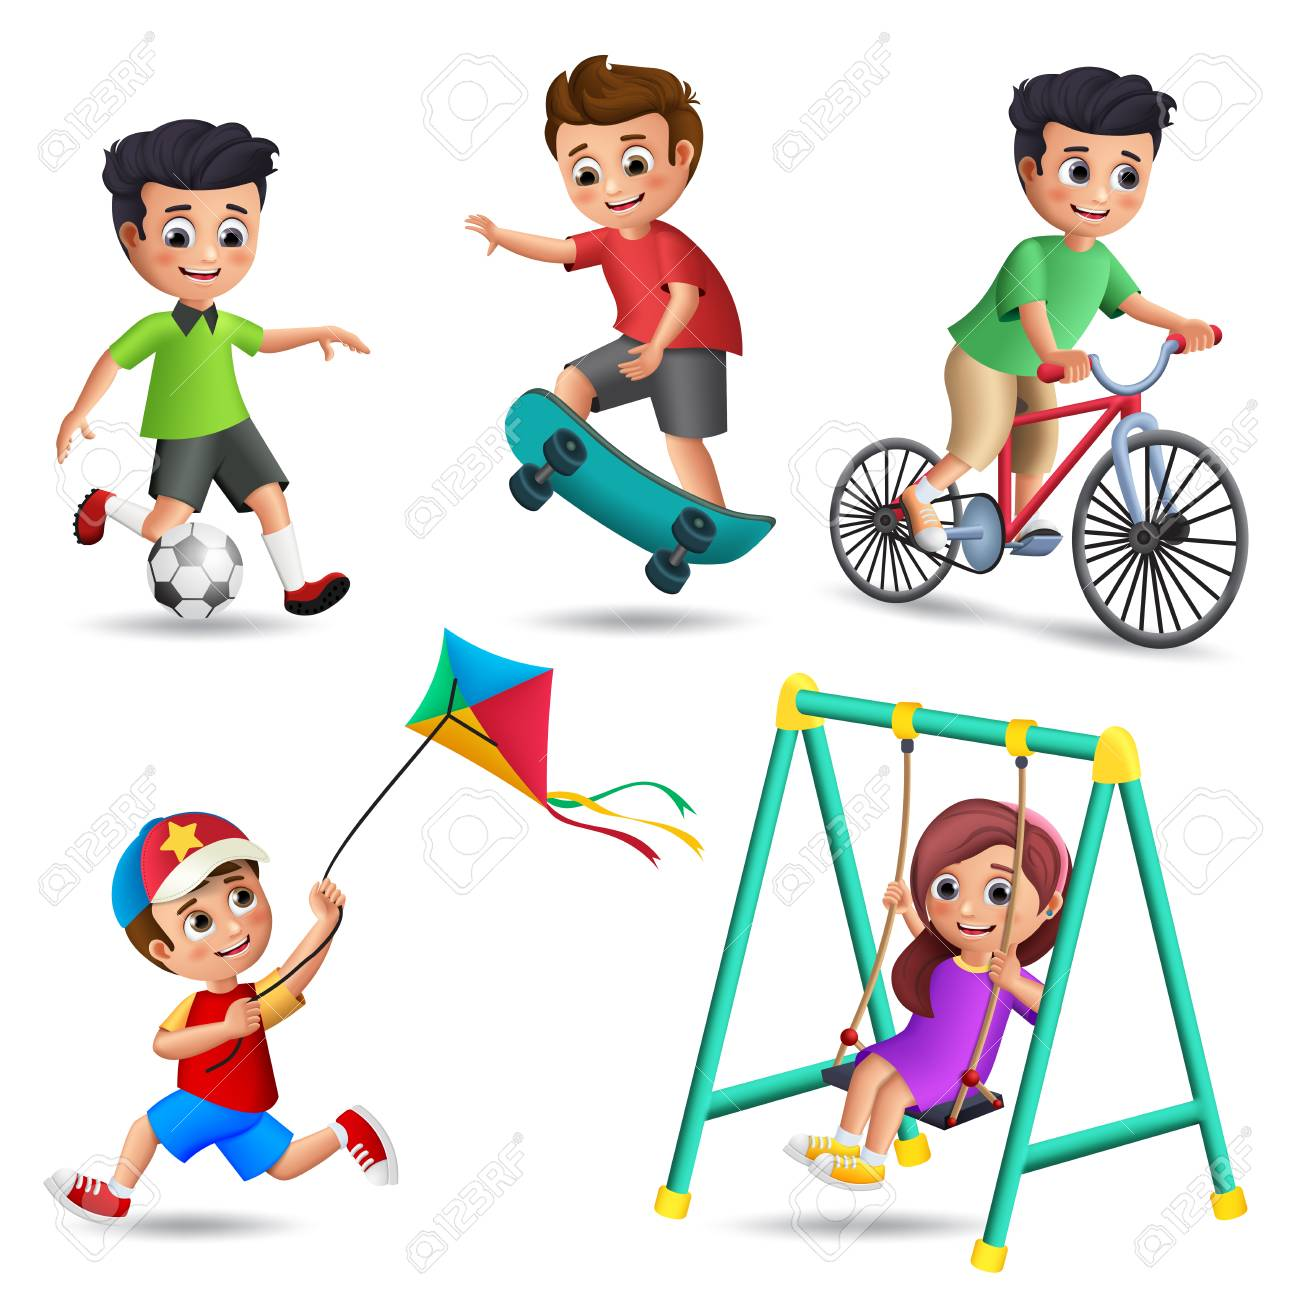 Kids playing vector characters set  Young boys and girls happy